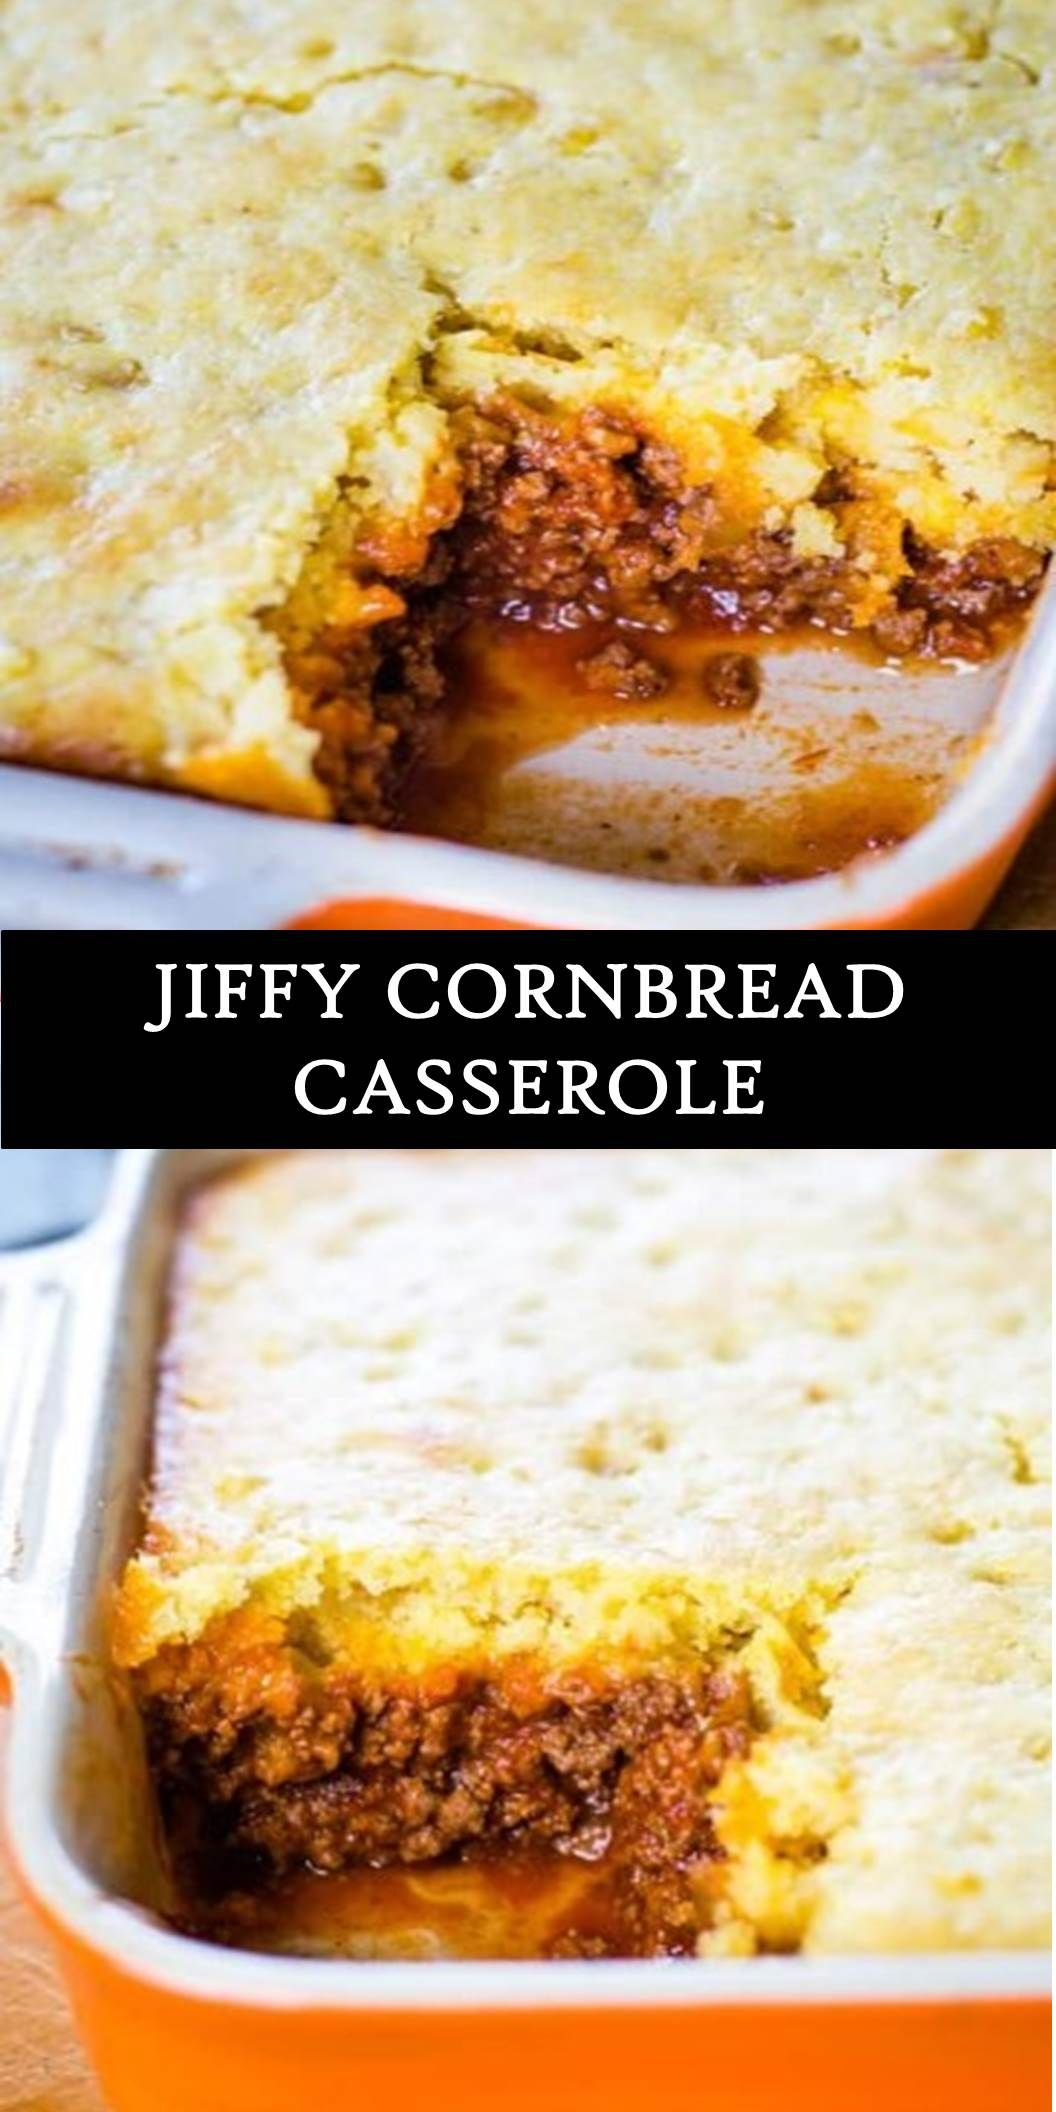 #The #World's #most #delicious #jiffy #cornbread #casserole The World's most delicious jiffy cornbread casserole Prep Time: 10 minutes Cook Time: 20 minutes Total Time: 30 minutes Yield: 6 Category: Casserole Method: Oven Cuisine: American #Best #Vegan #Recipes #BestVeganRecipes #mexicancornbreadcasserole